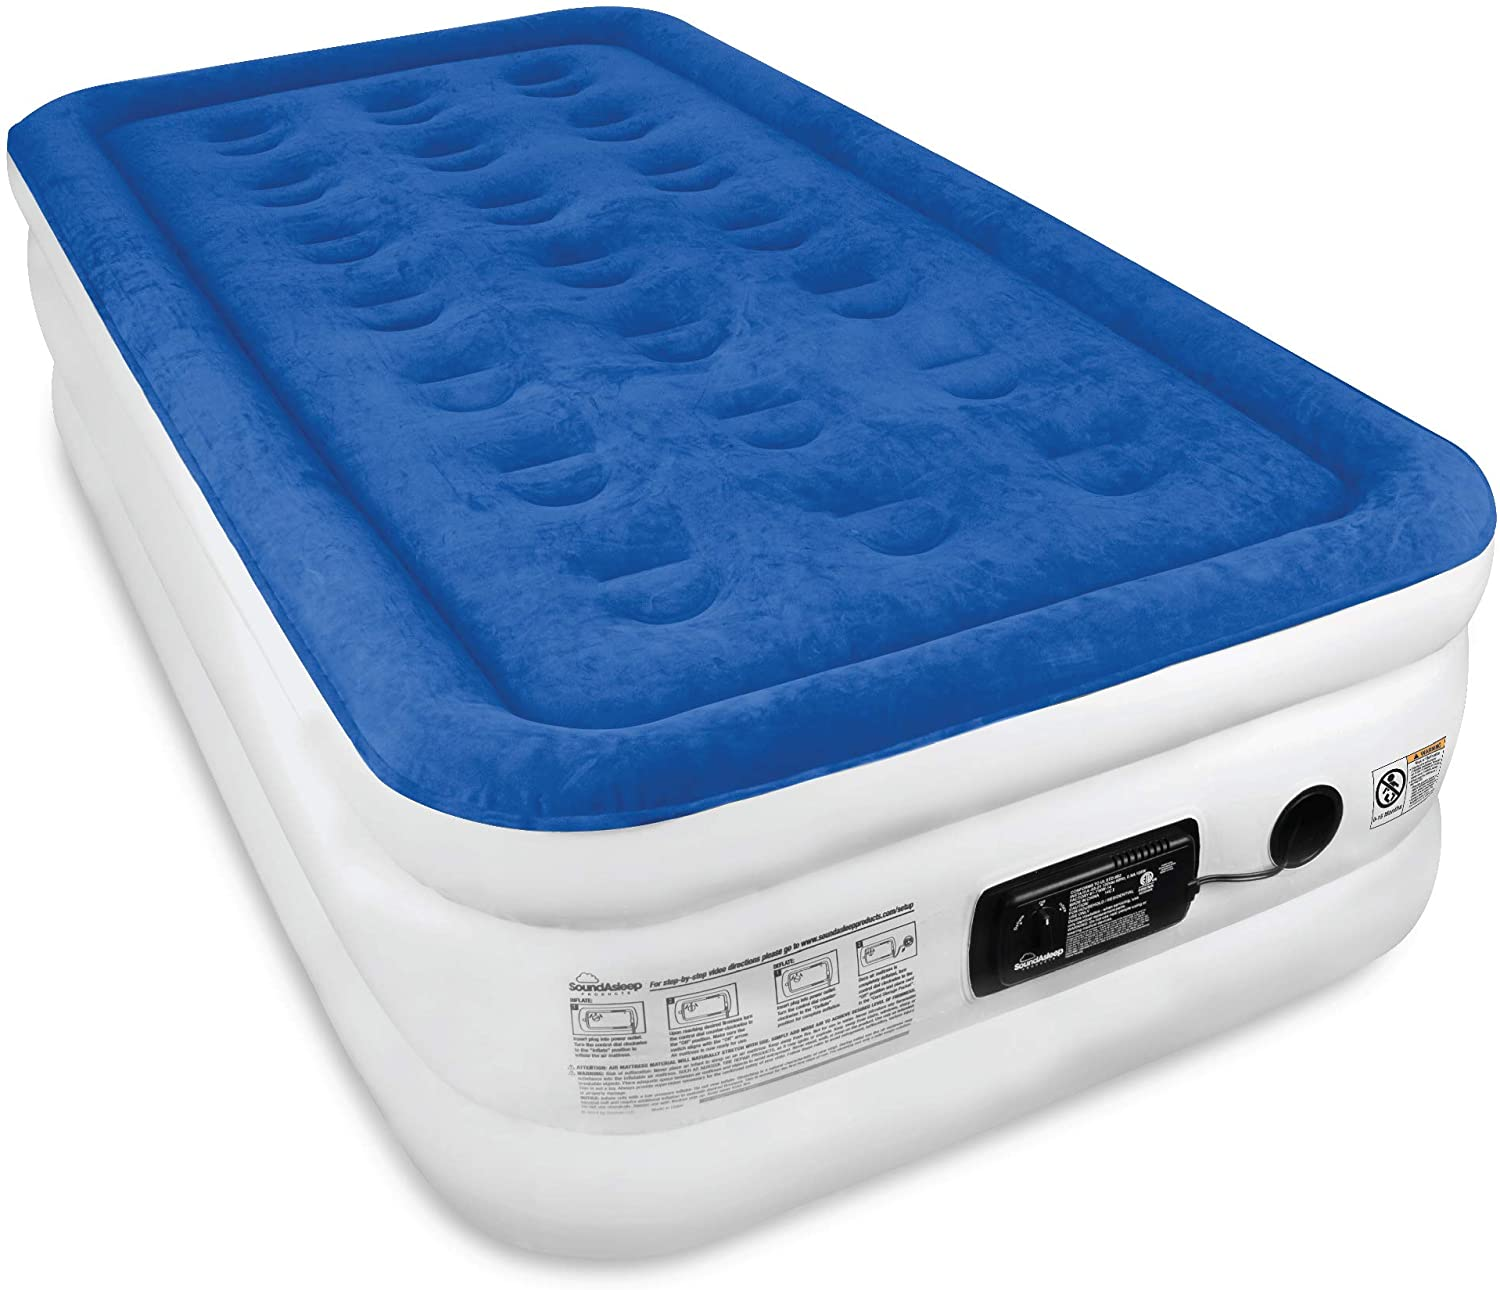 Best Air Mattress For Long Term Use With Maximum Comfort in 2020 1